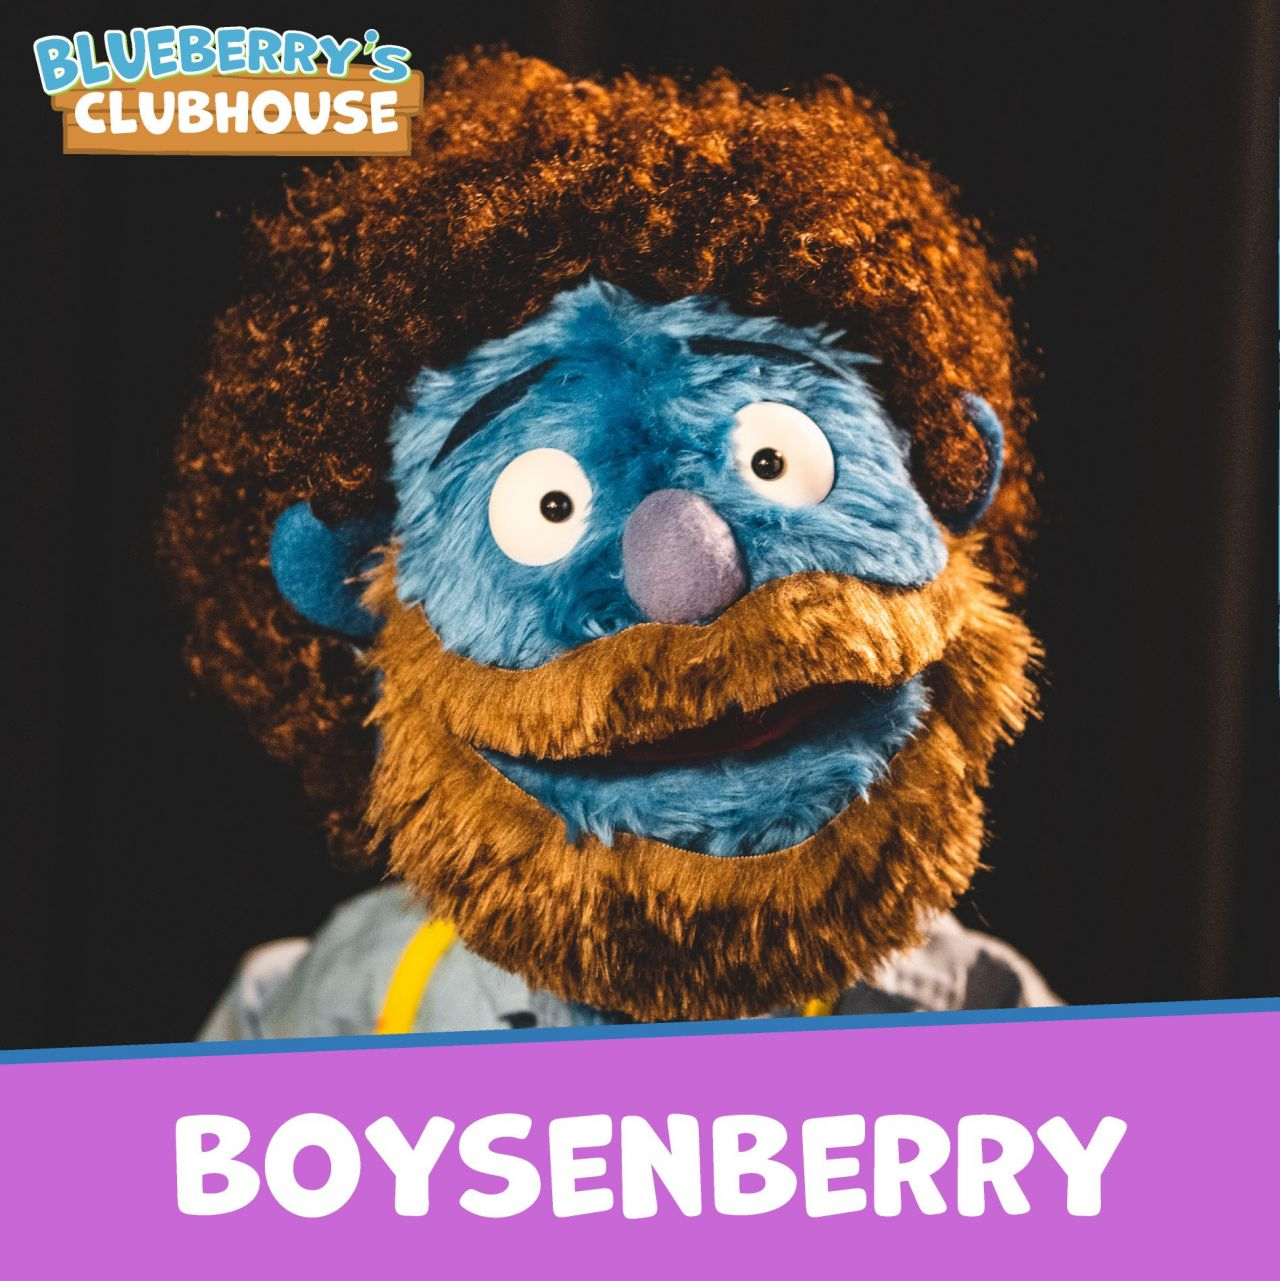 Boysenberry, with a Bob Ross-esque afro and beard, looks into the camera